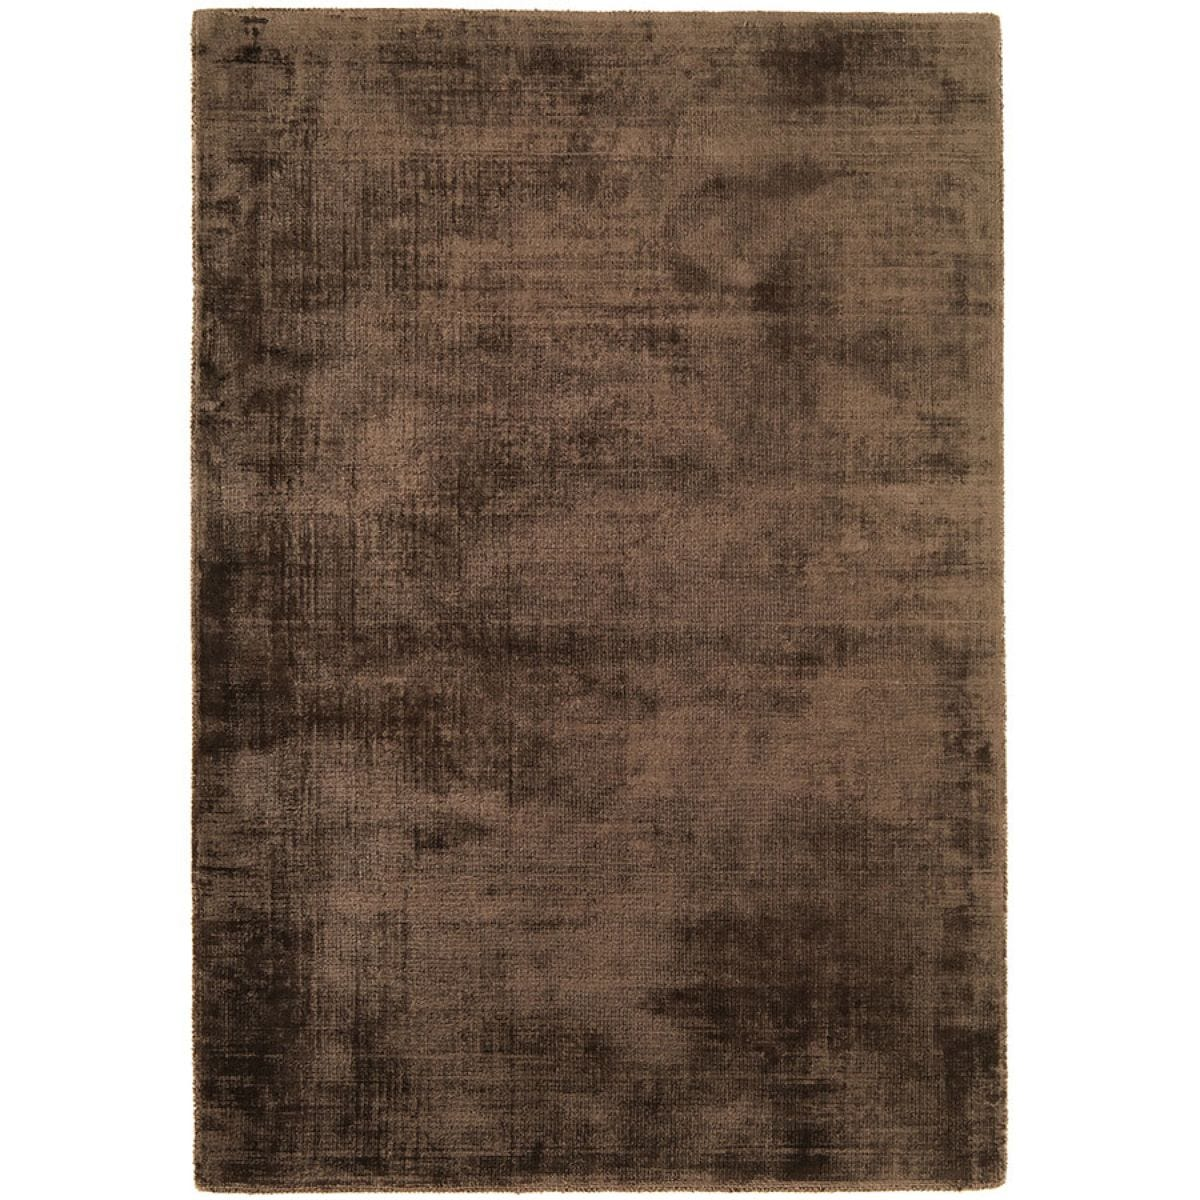 Asiatic Blade Rug , 240 x 340cm - Chocolate